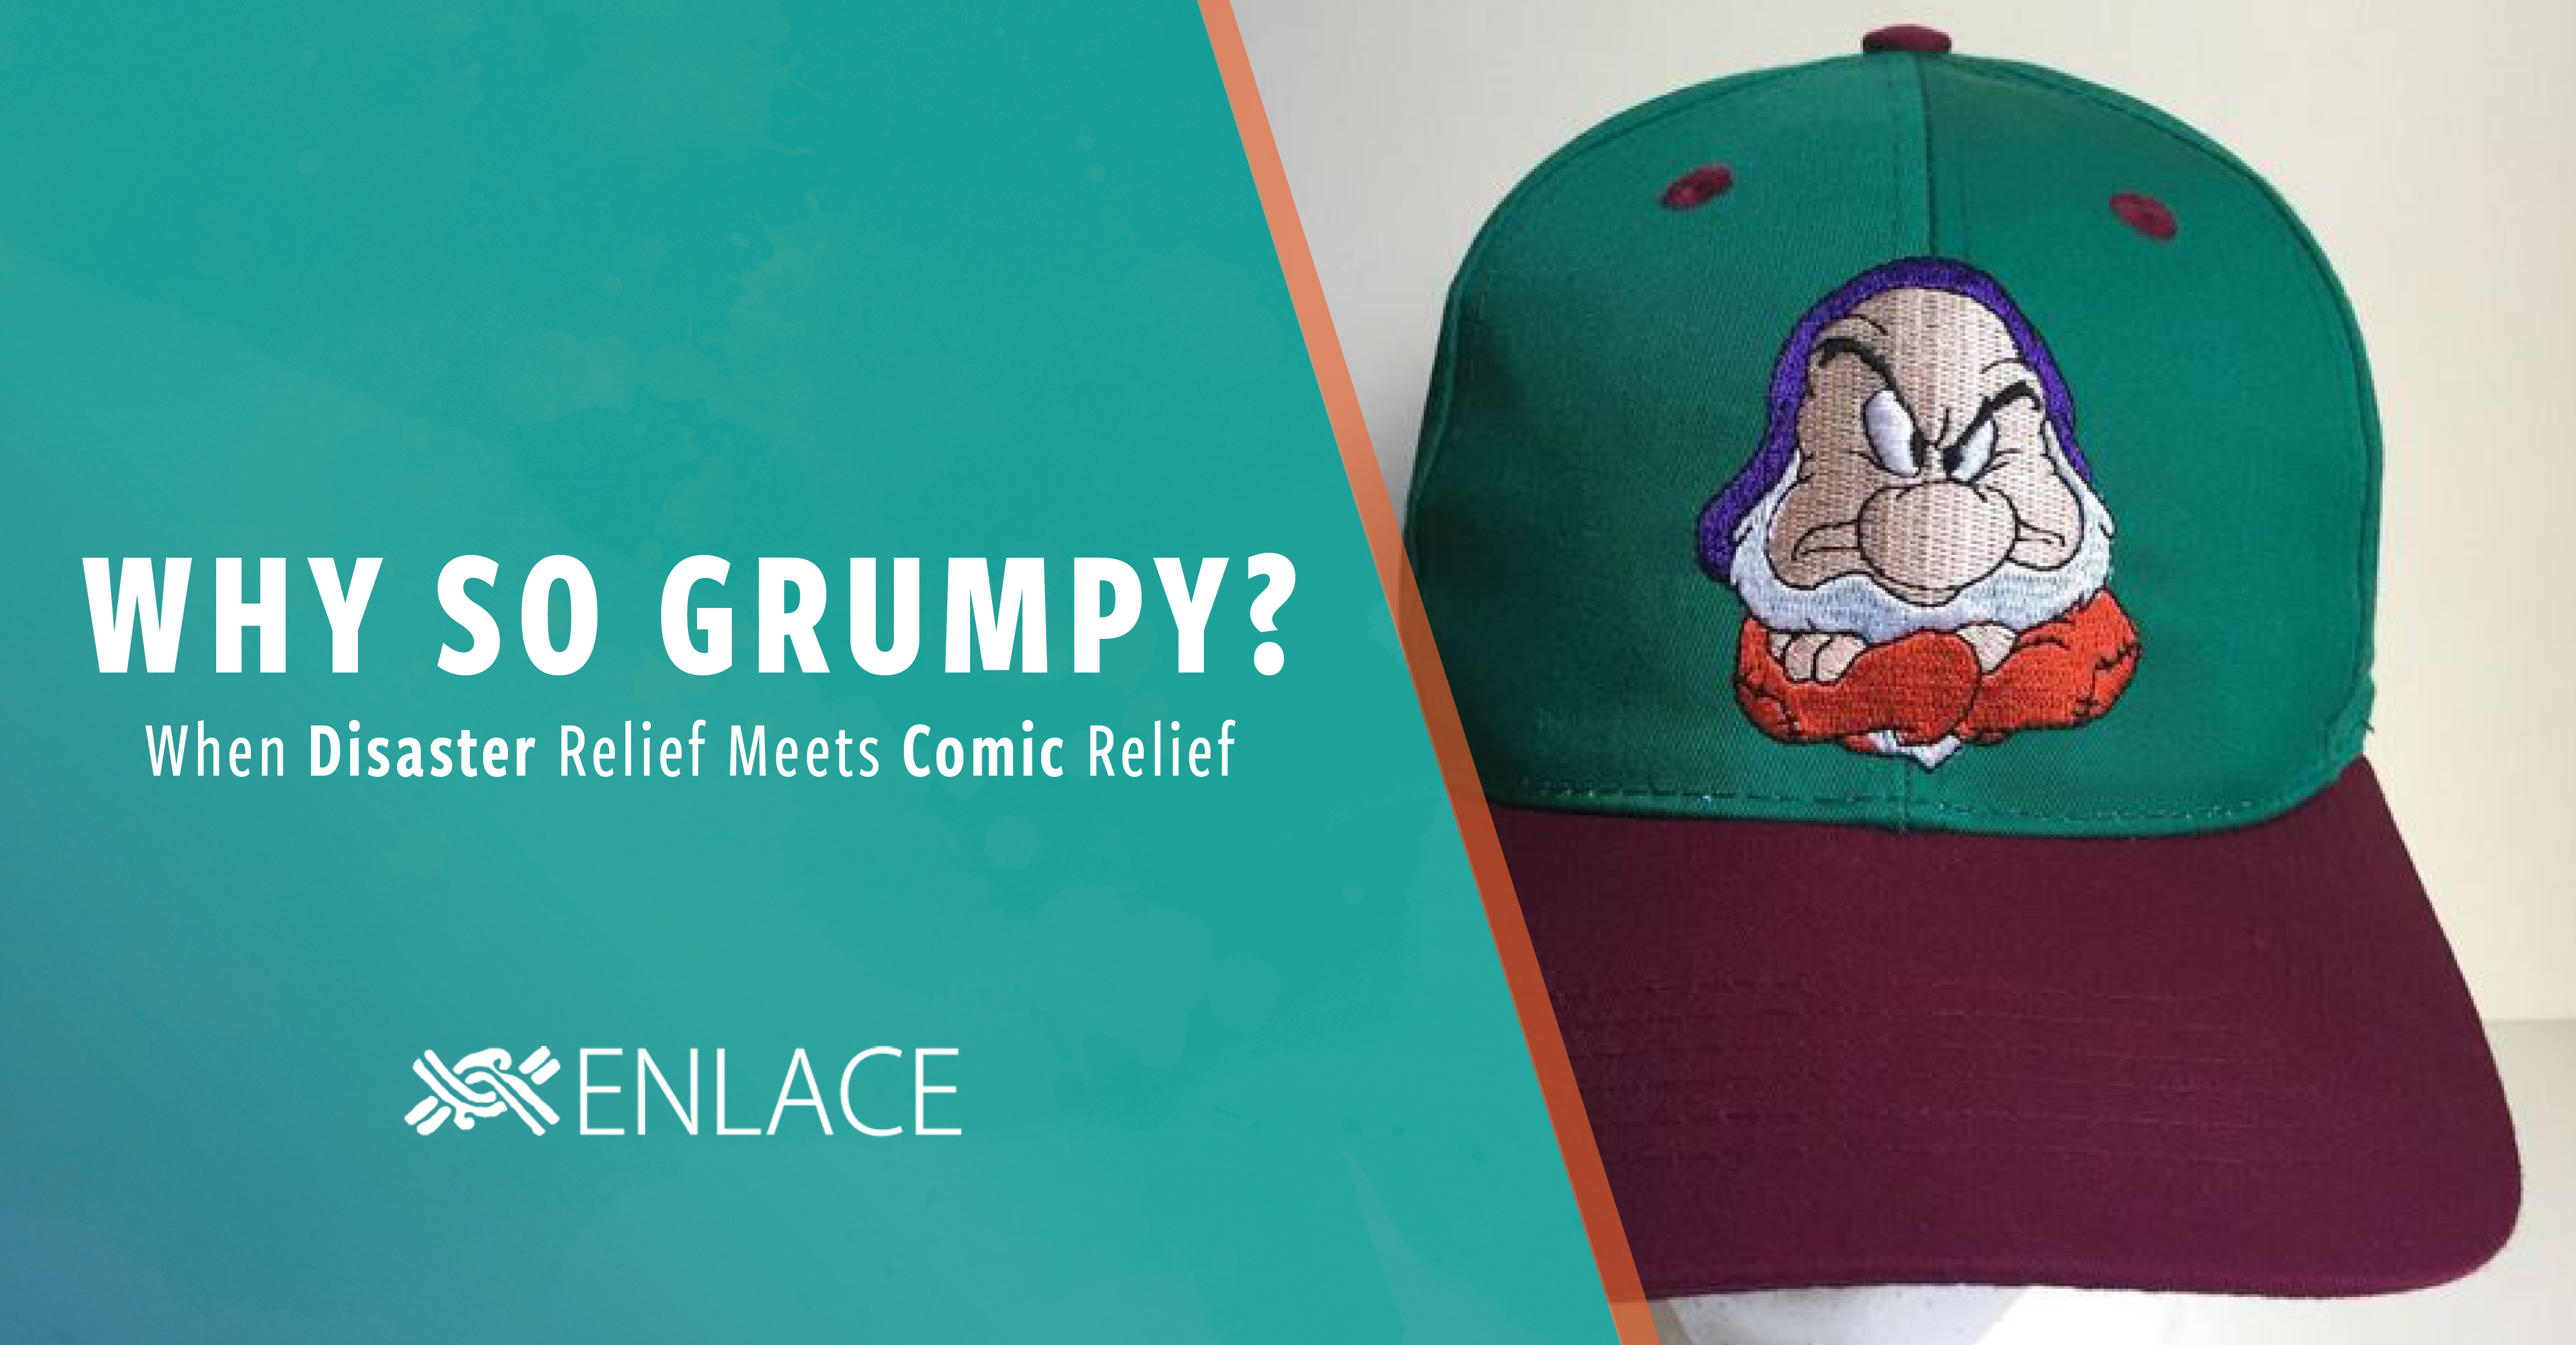 Why So Grumpy?: When Disaster Relief Meets Comic Relief